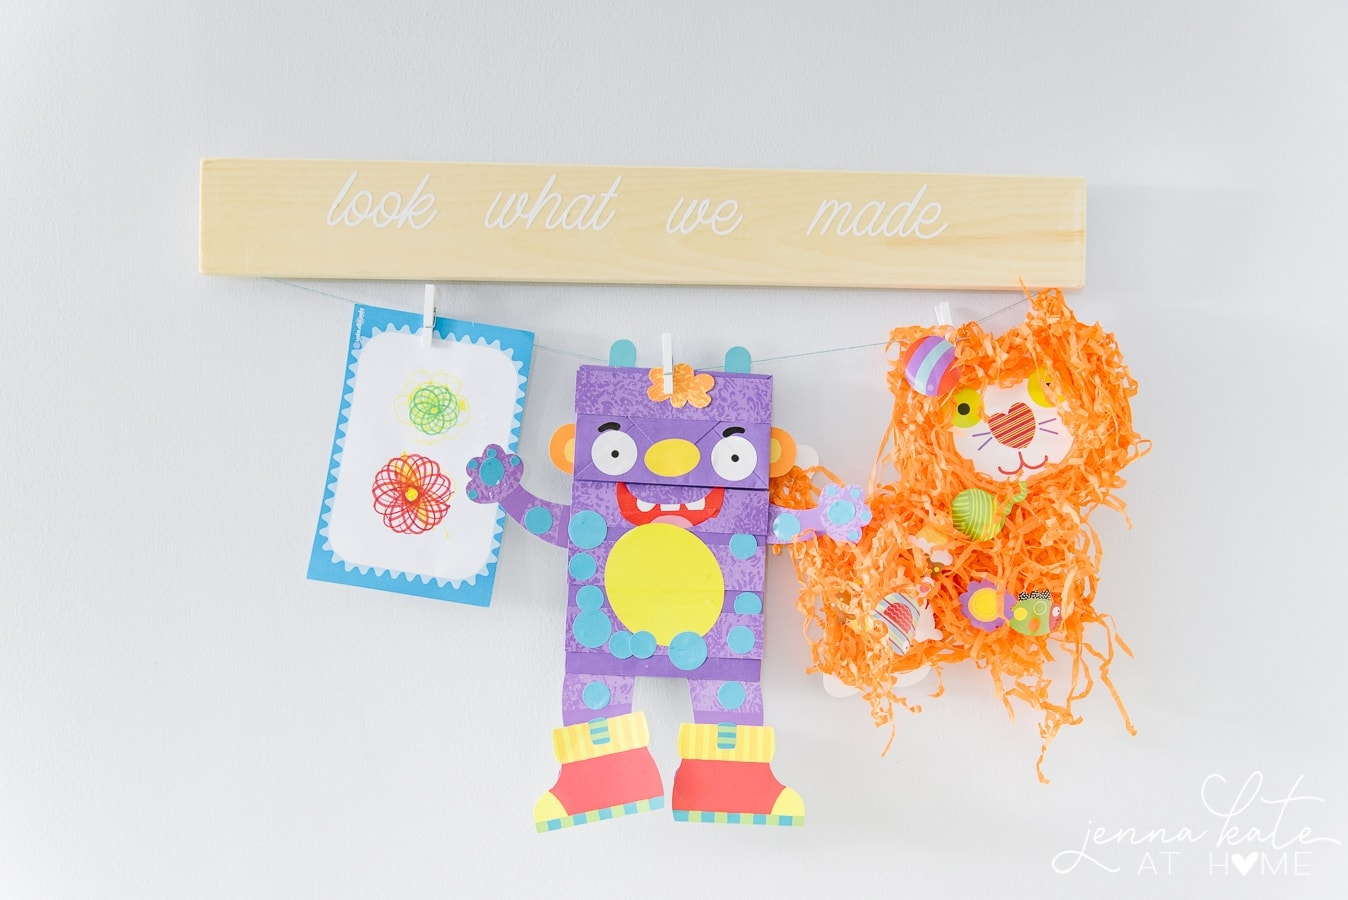 """A wooden artwork hanger with the words \""""Look what we made\"""", and a clothes line and pegs holding colorful artwork"""